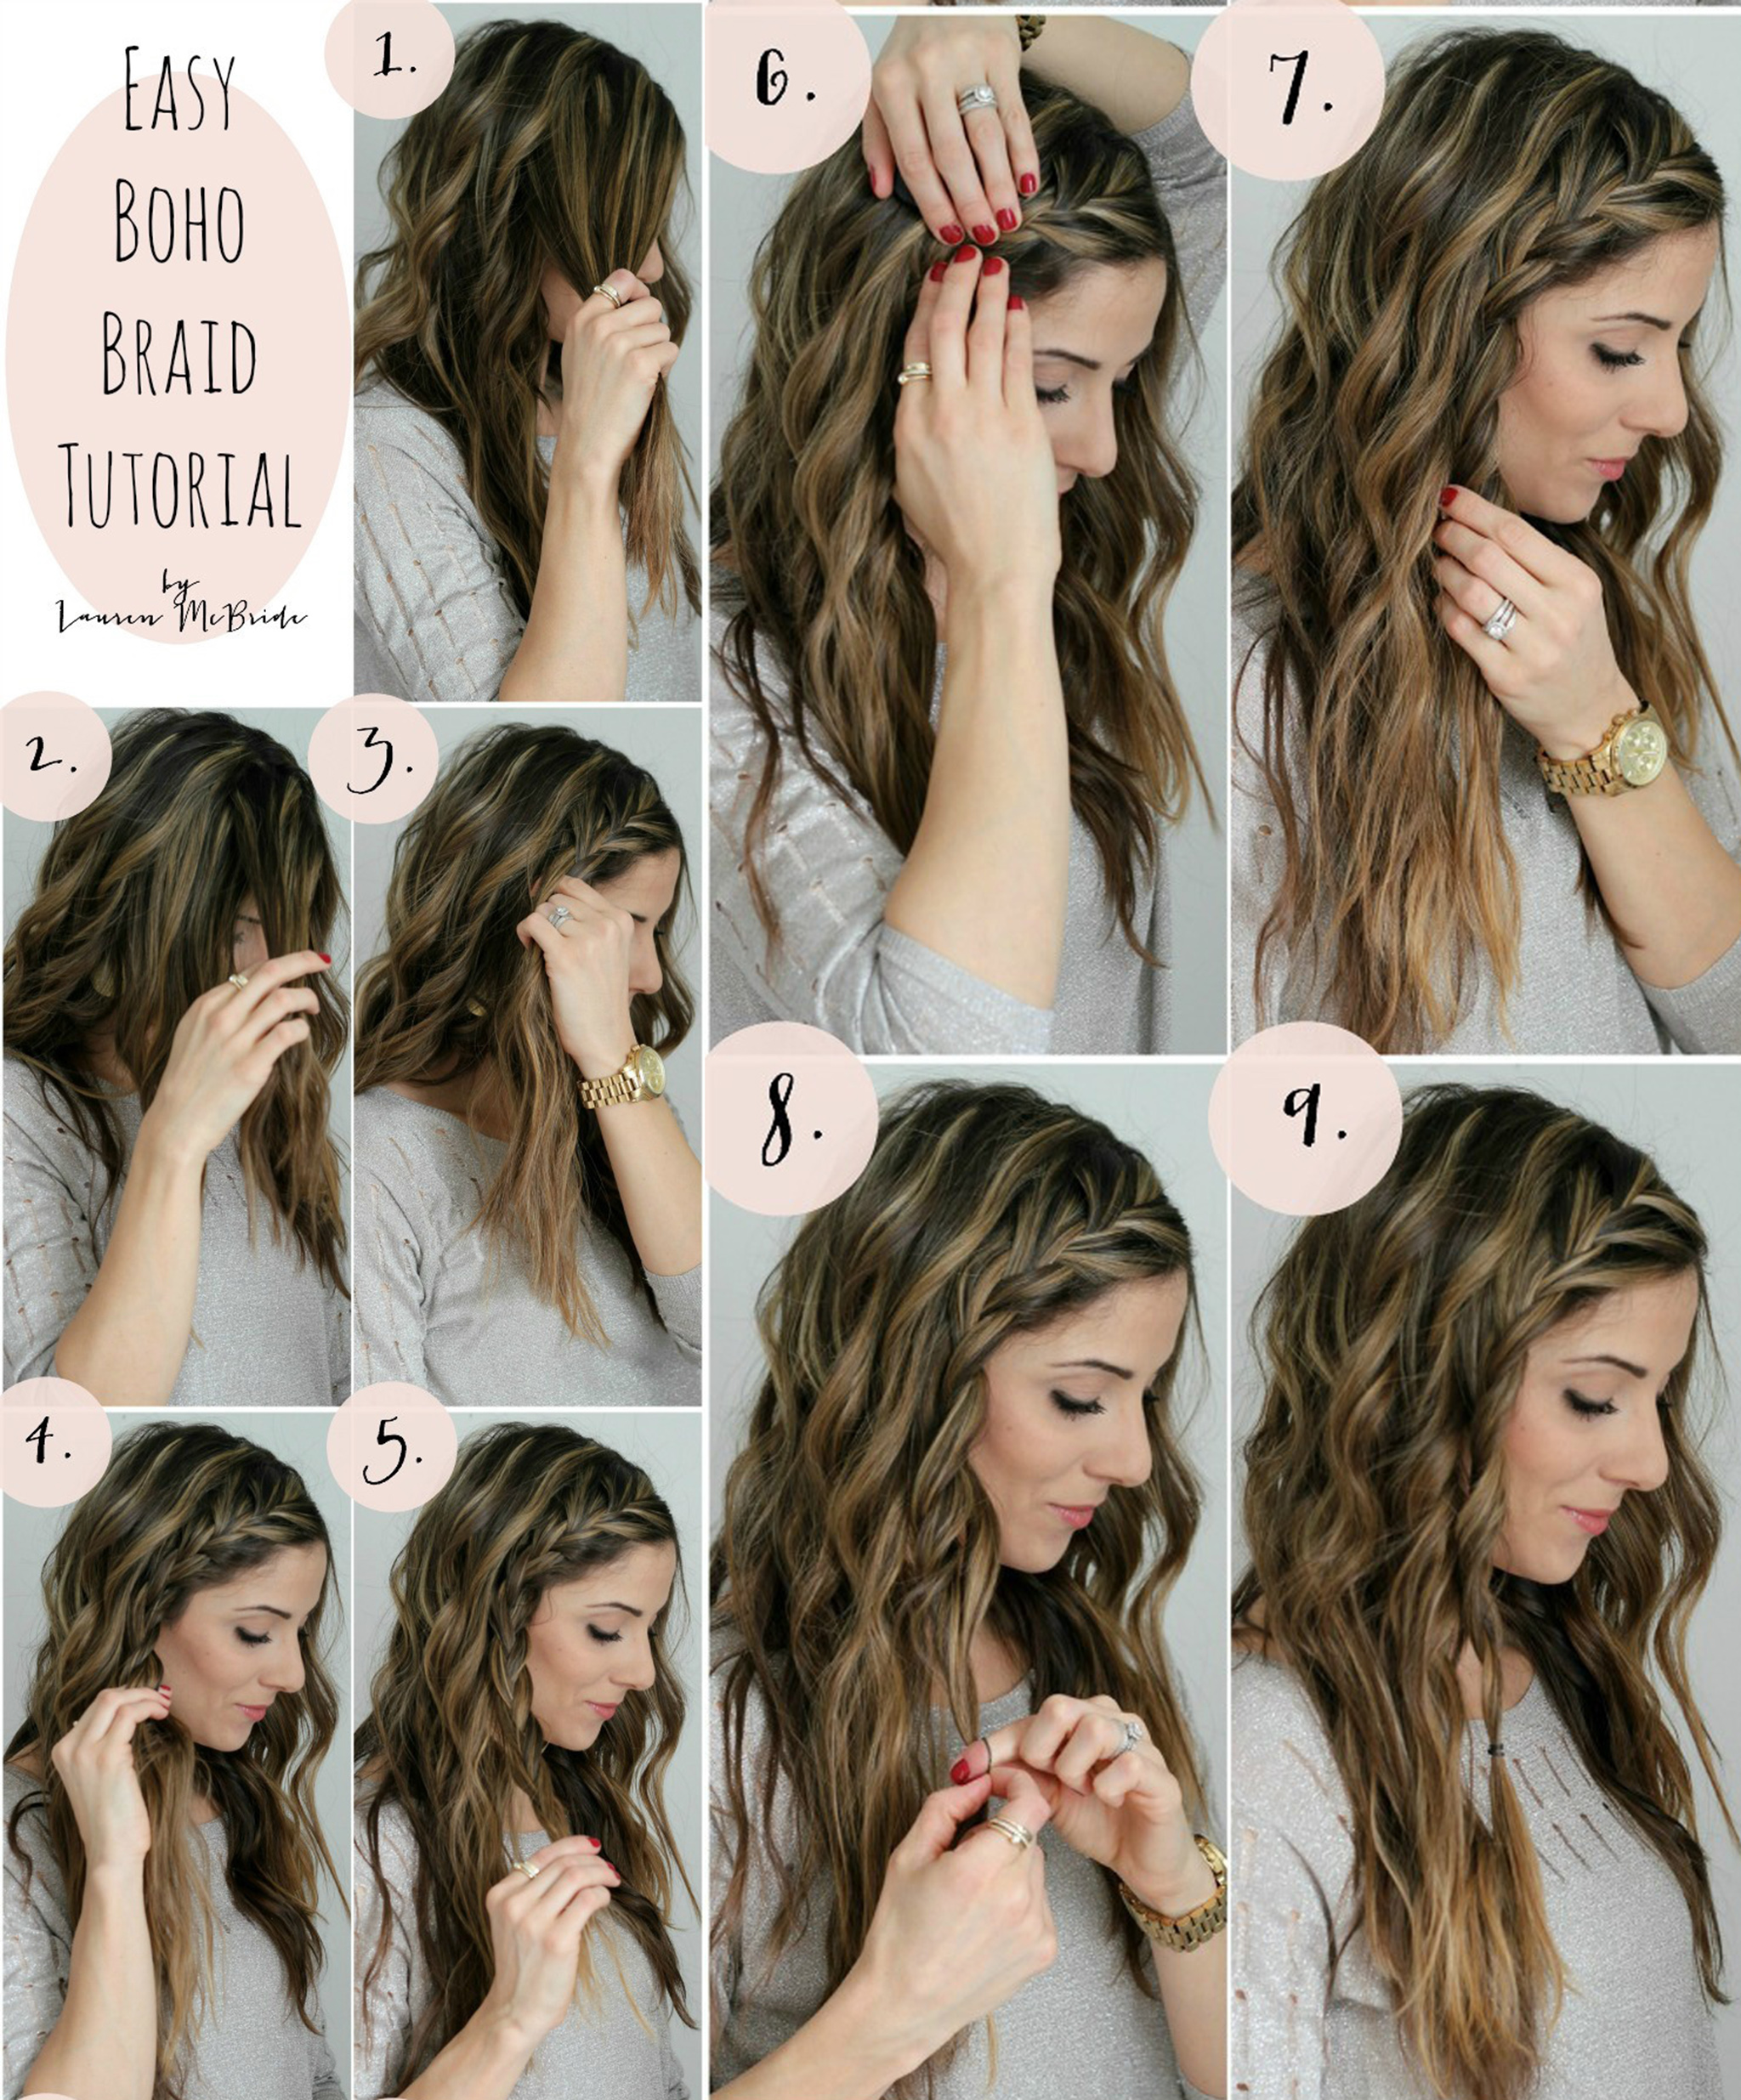 Top 10 Quick & Easy Braided Hairstyles Step By Step